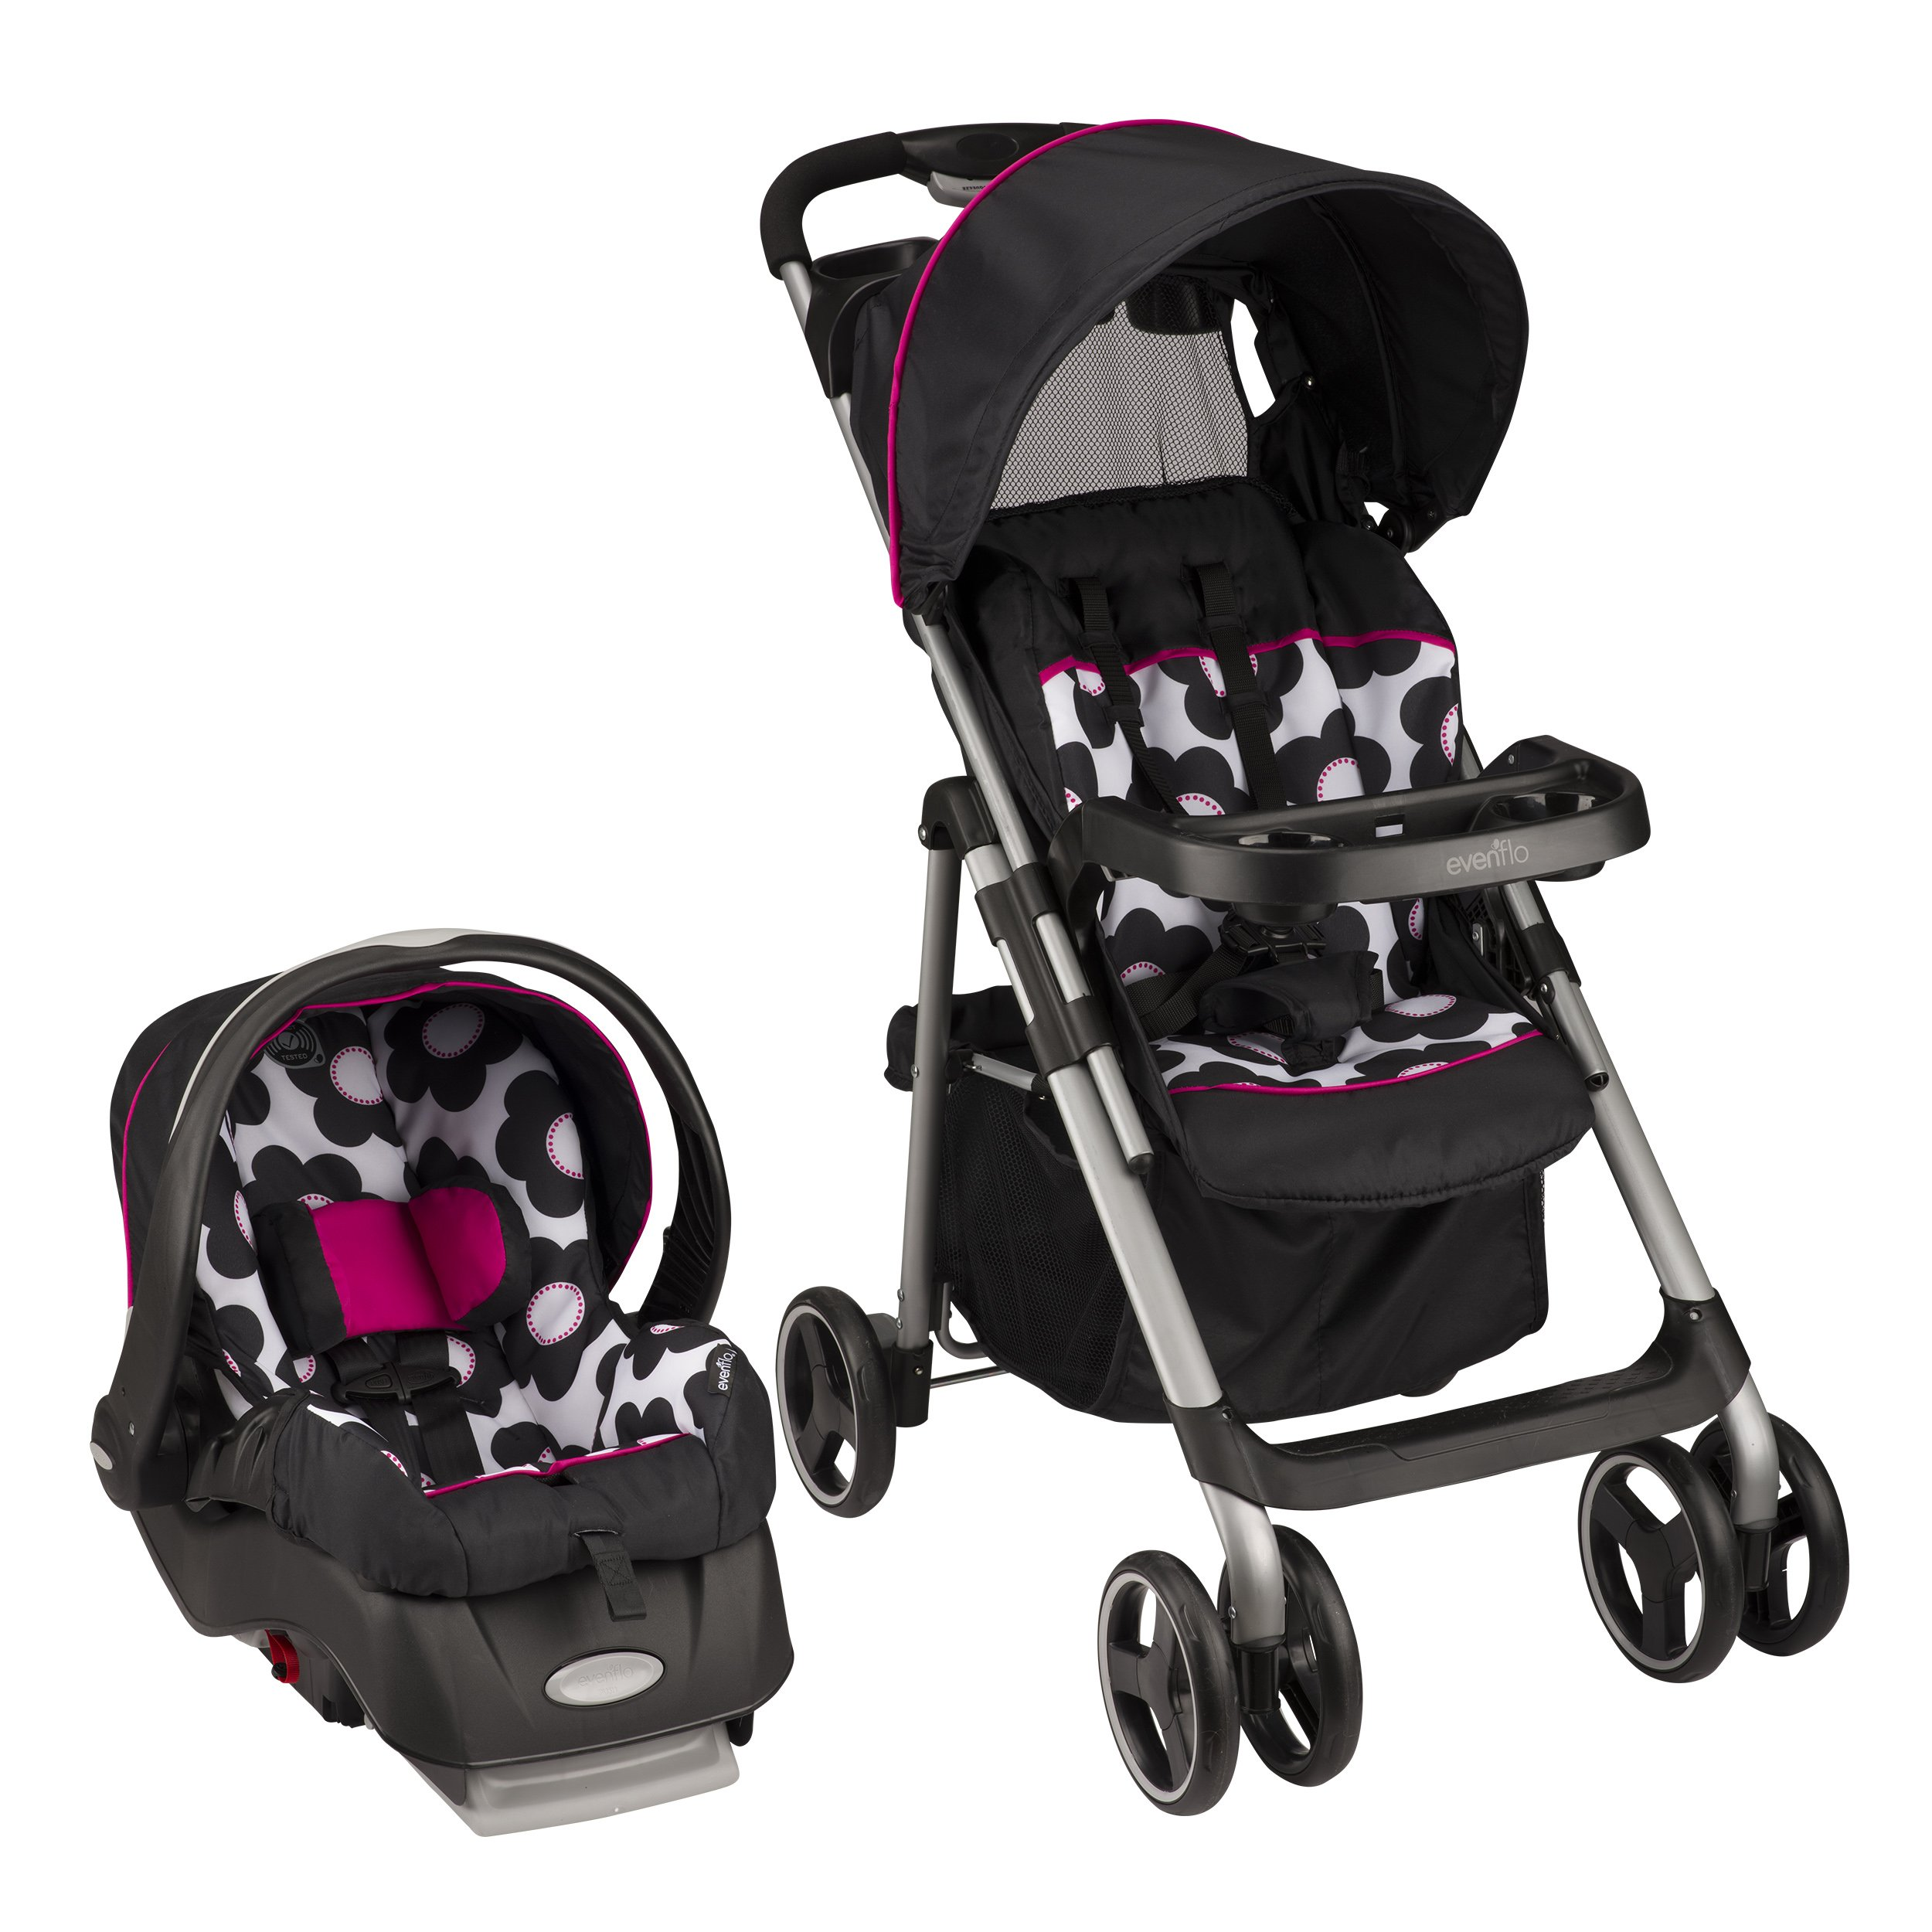 Baby Infant Combo Stroller Car Seat Evenflo Vive Sport Travel System Marianna